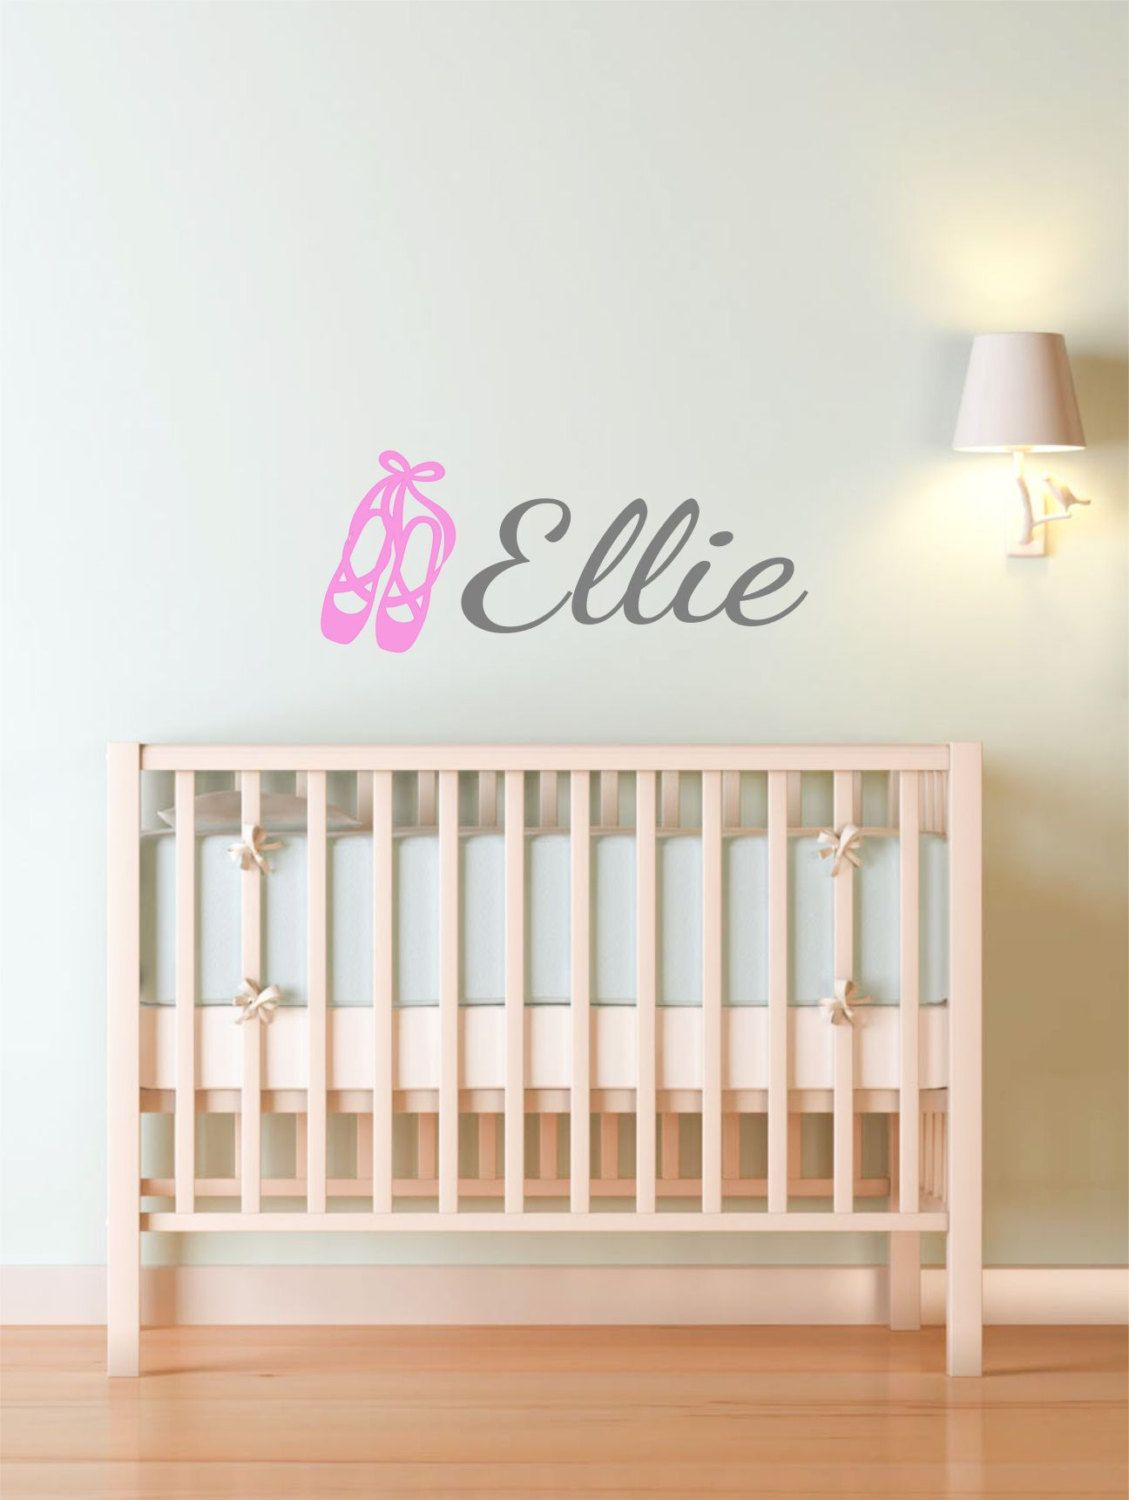 Personalized Name and Ballet Dance Shoes - Vinyl Art Wall Decal, Personalized Bedroom Name Vinyl Sticker,Vinyl Lettering, Dancer, 28x11.5 by TheVinylCompany on Etsy